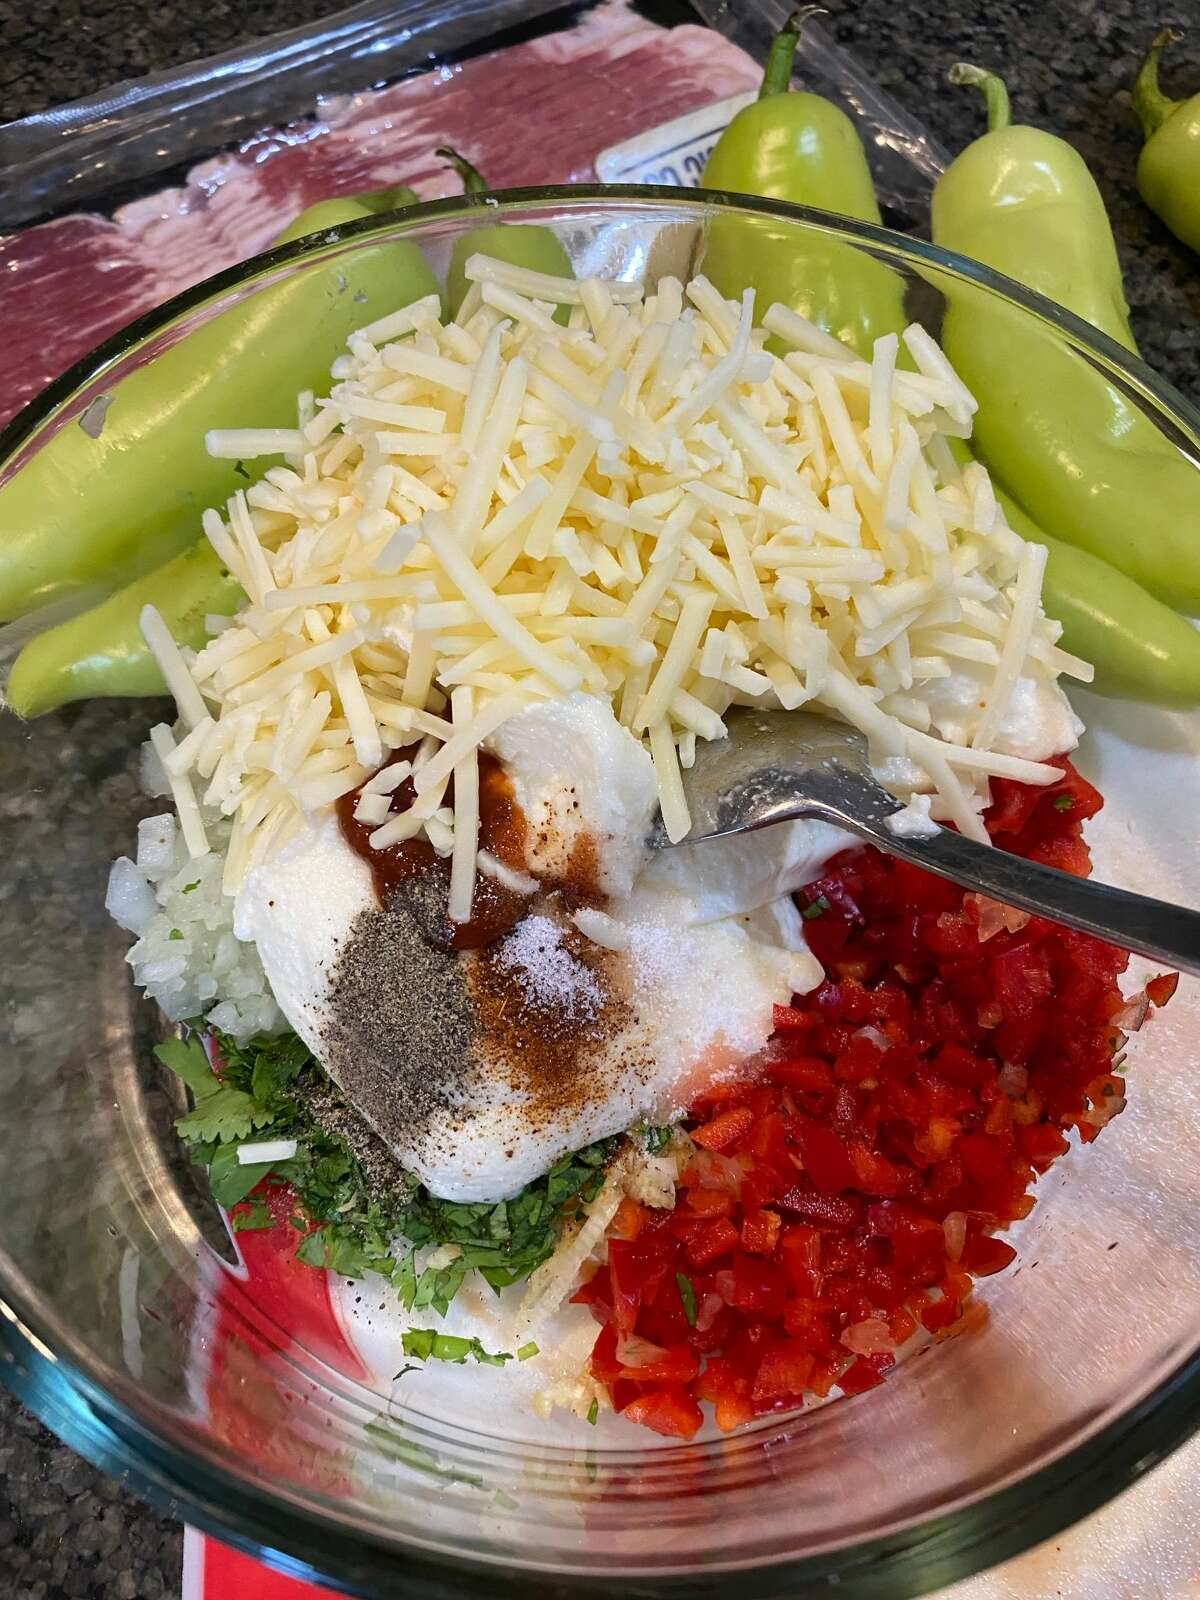 The ricotta mixture includes onion, garlic, bell pepper, sriracha, herbs and spices.